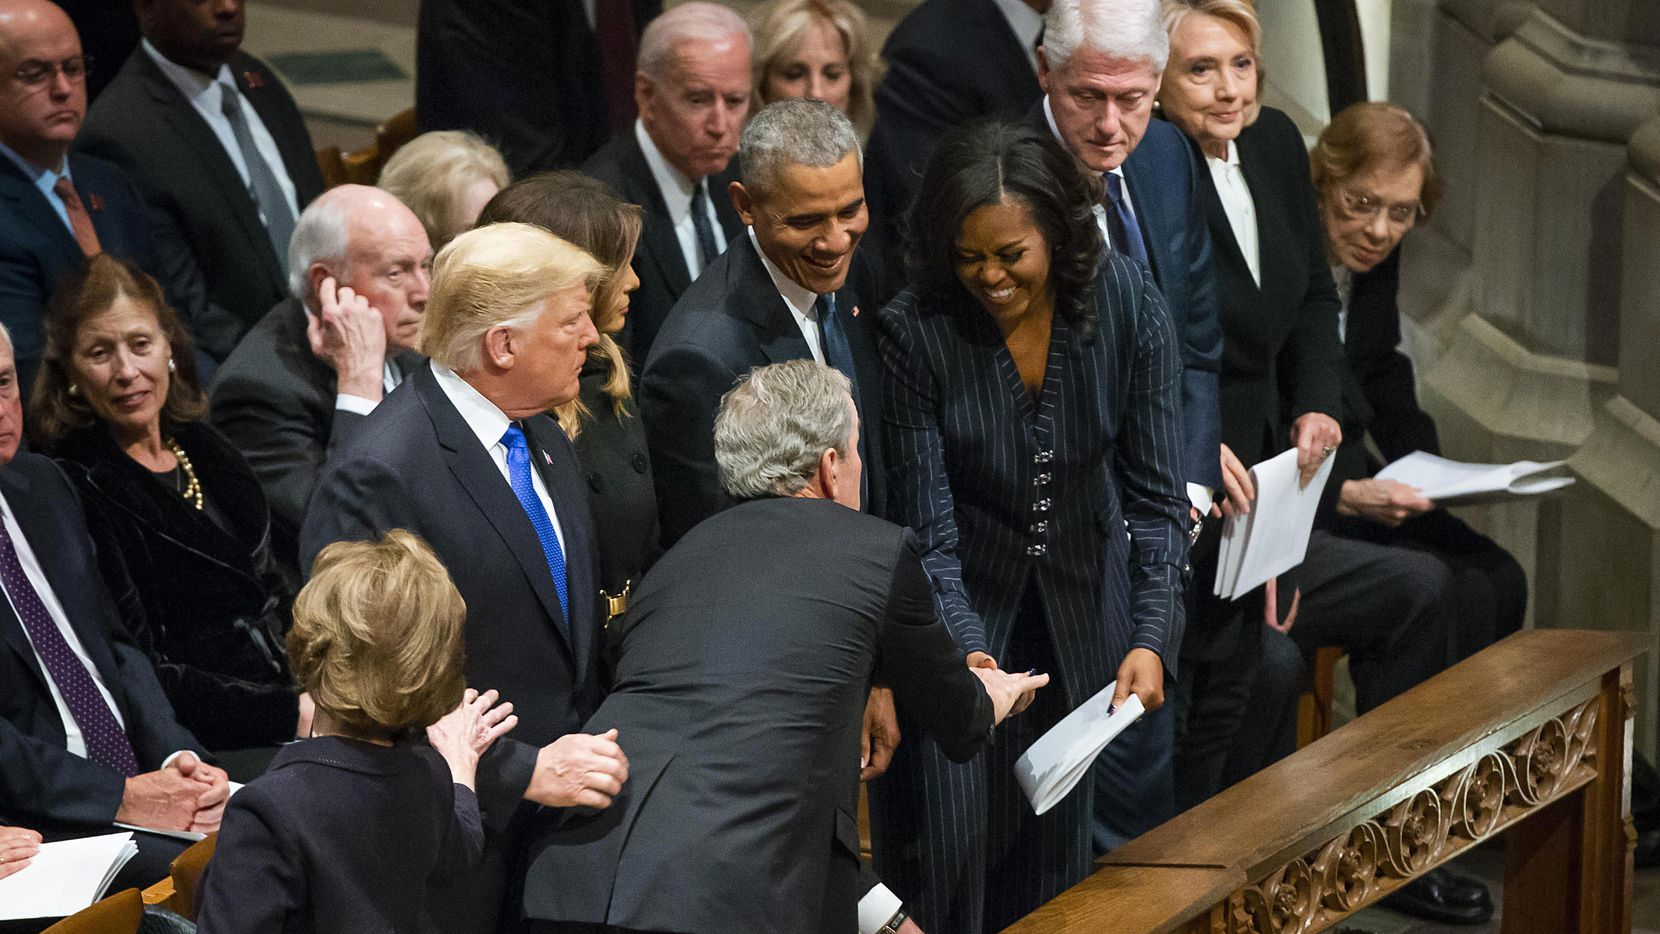 Former President George W. Bush, hands something to a laughing Michelle Obama as (from left) President Donald Trump, first lady Melania Trump, former President Barack Obama, former President Bill Clinton and former Secretary of State Hillary Clinton, look on before Bush took his seat for the State Funeral for George H.W. Bush, the 41st President of the United States, at the Washington National Cathedral on Wednesday, Dec. 5, 2018, in Washington. (Smiley N. Pool/The Dallas Morning News)